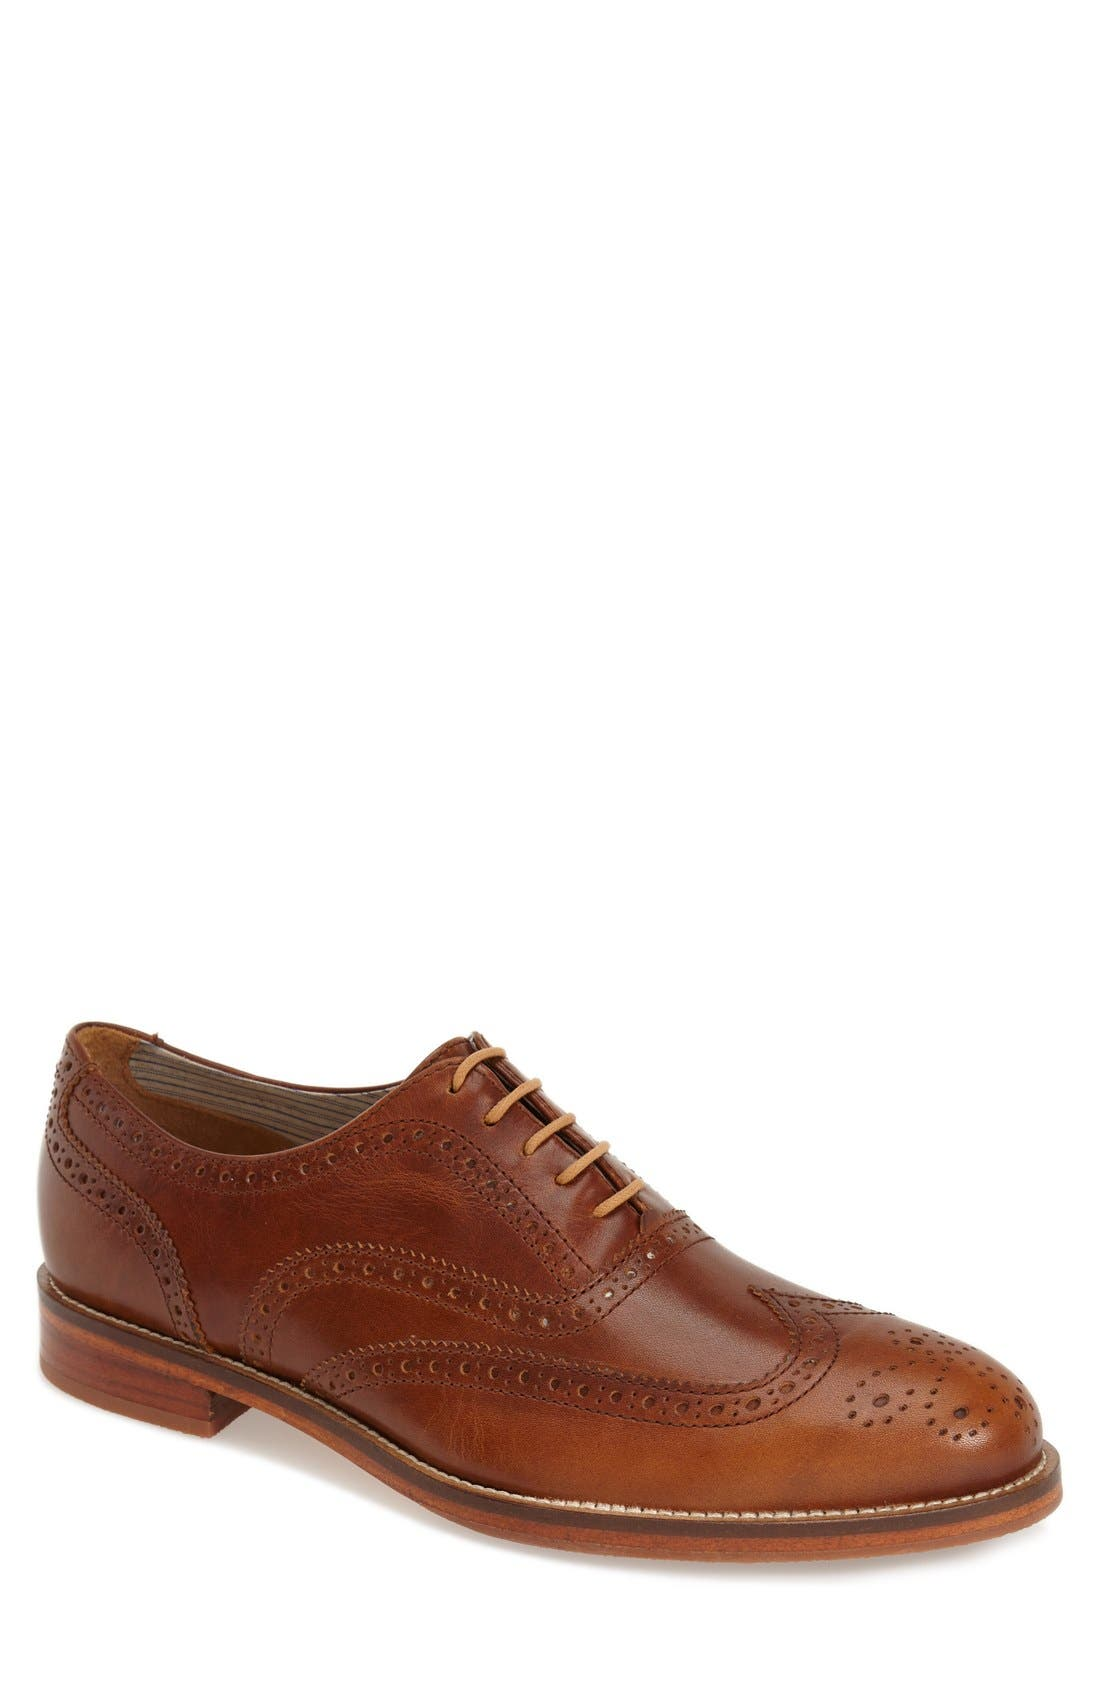 'Charlie Plus' Wingtip Oxford,                         Main,                         color, BRASS LEATHER